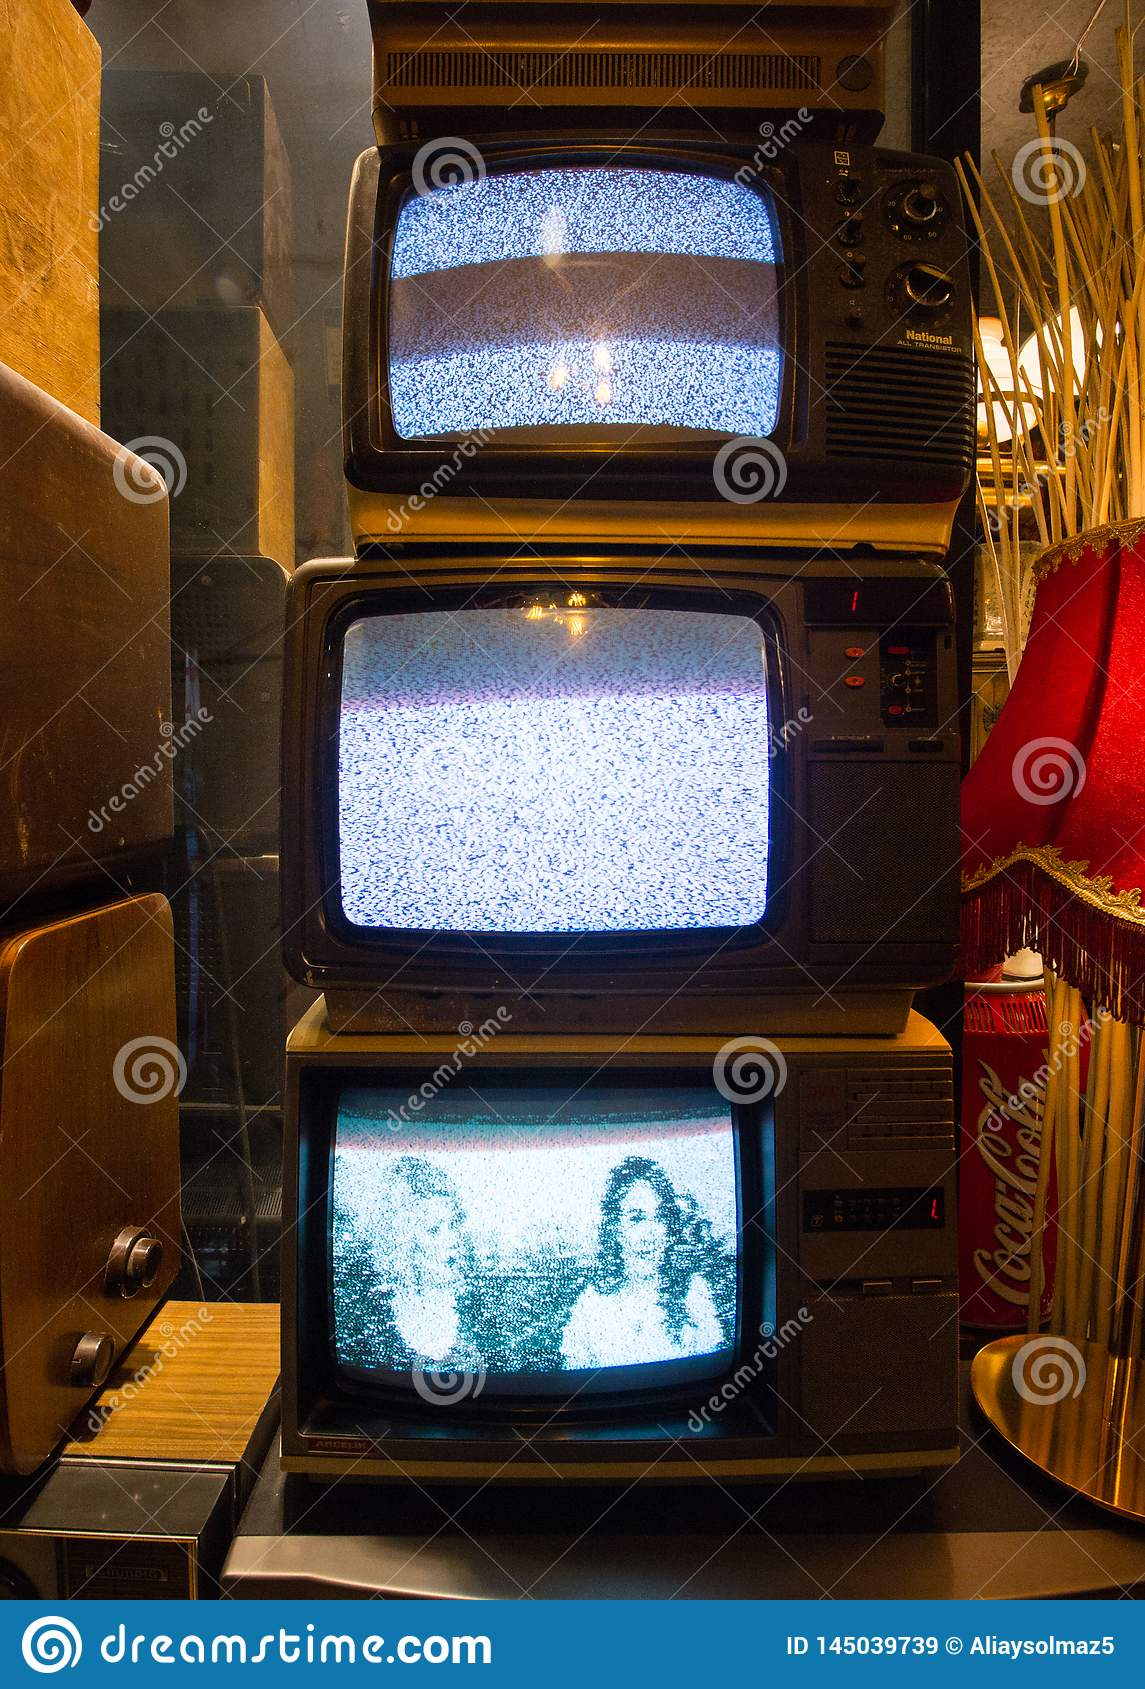 Istanbul, Istiklal Street / Turkey 16.4.2019: Old Classic Retro Televisions, Antique Collections